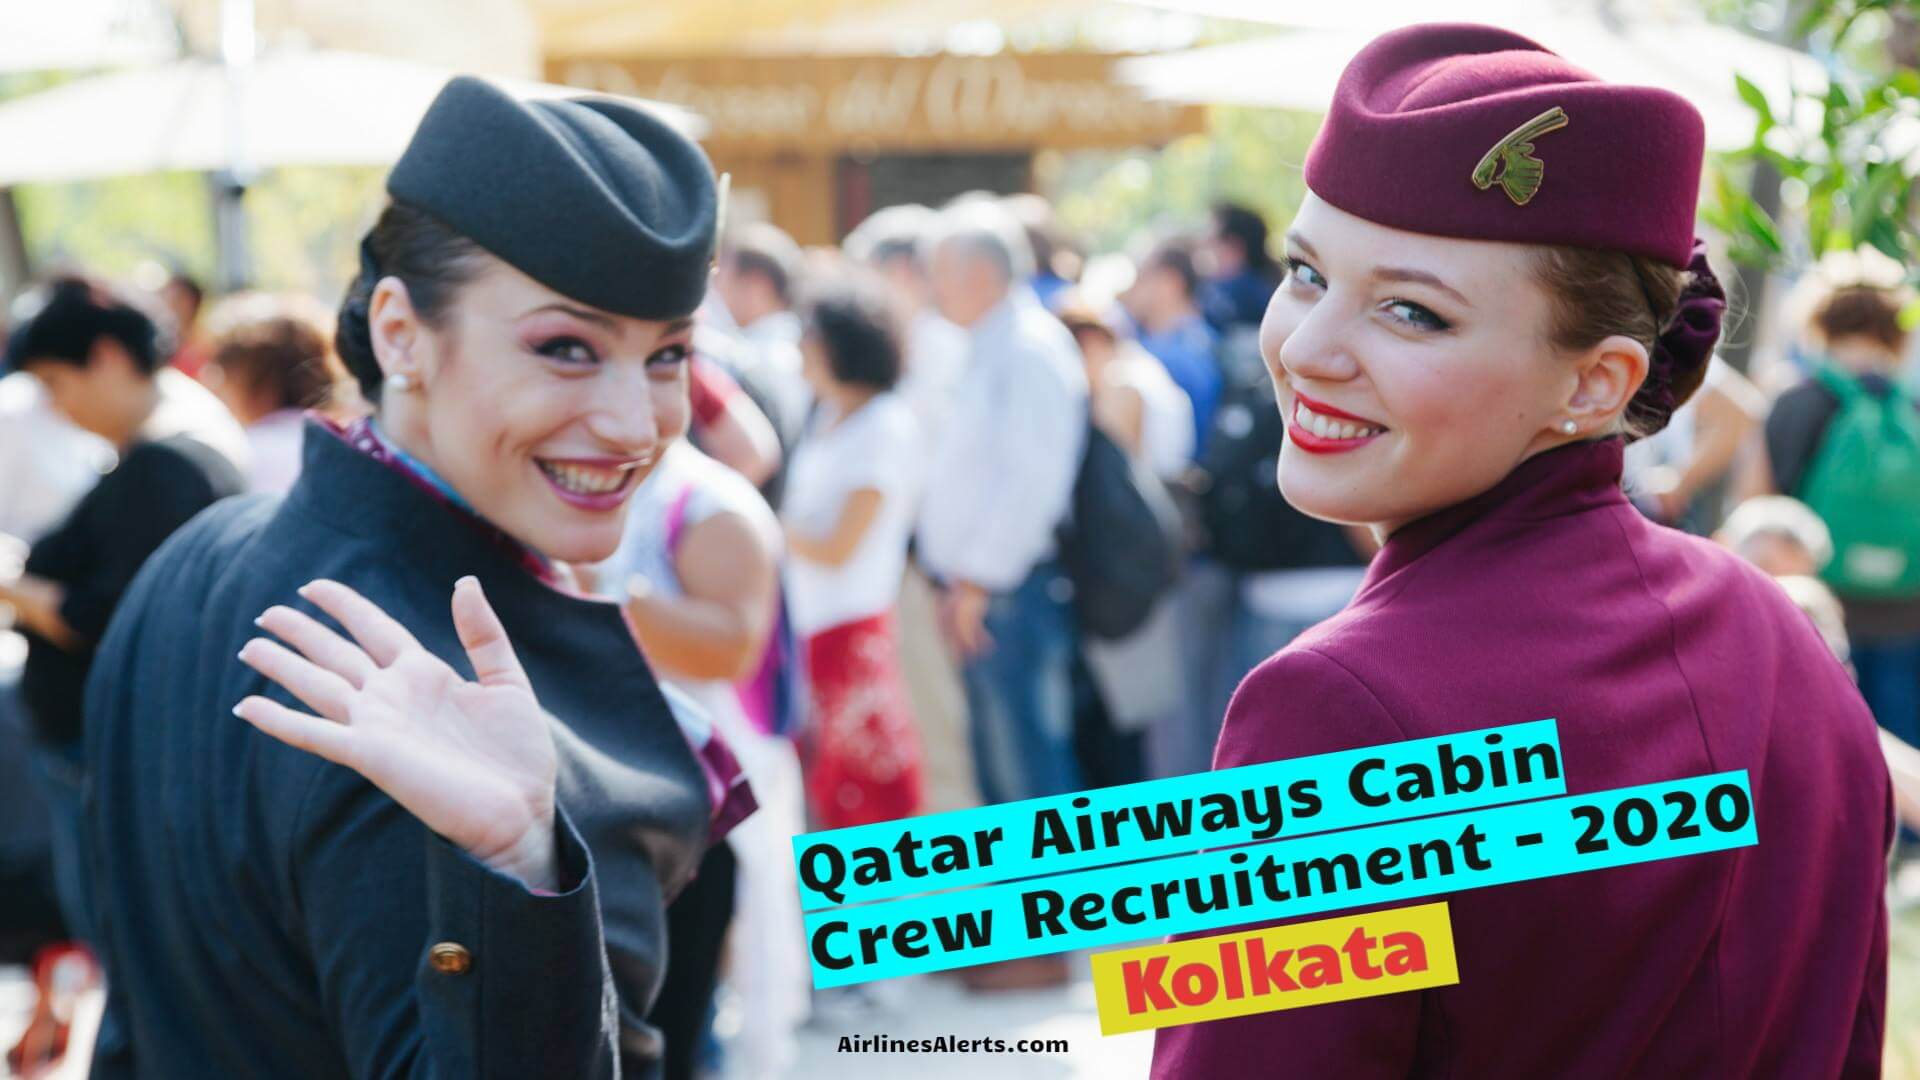 Qatar Airways Cabin Crew Recruitment (2020) Kolkata - Apply Online